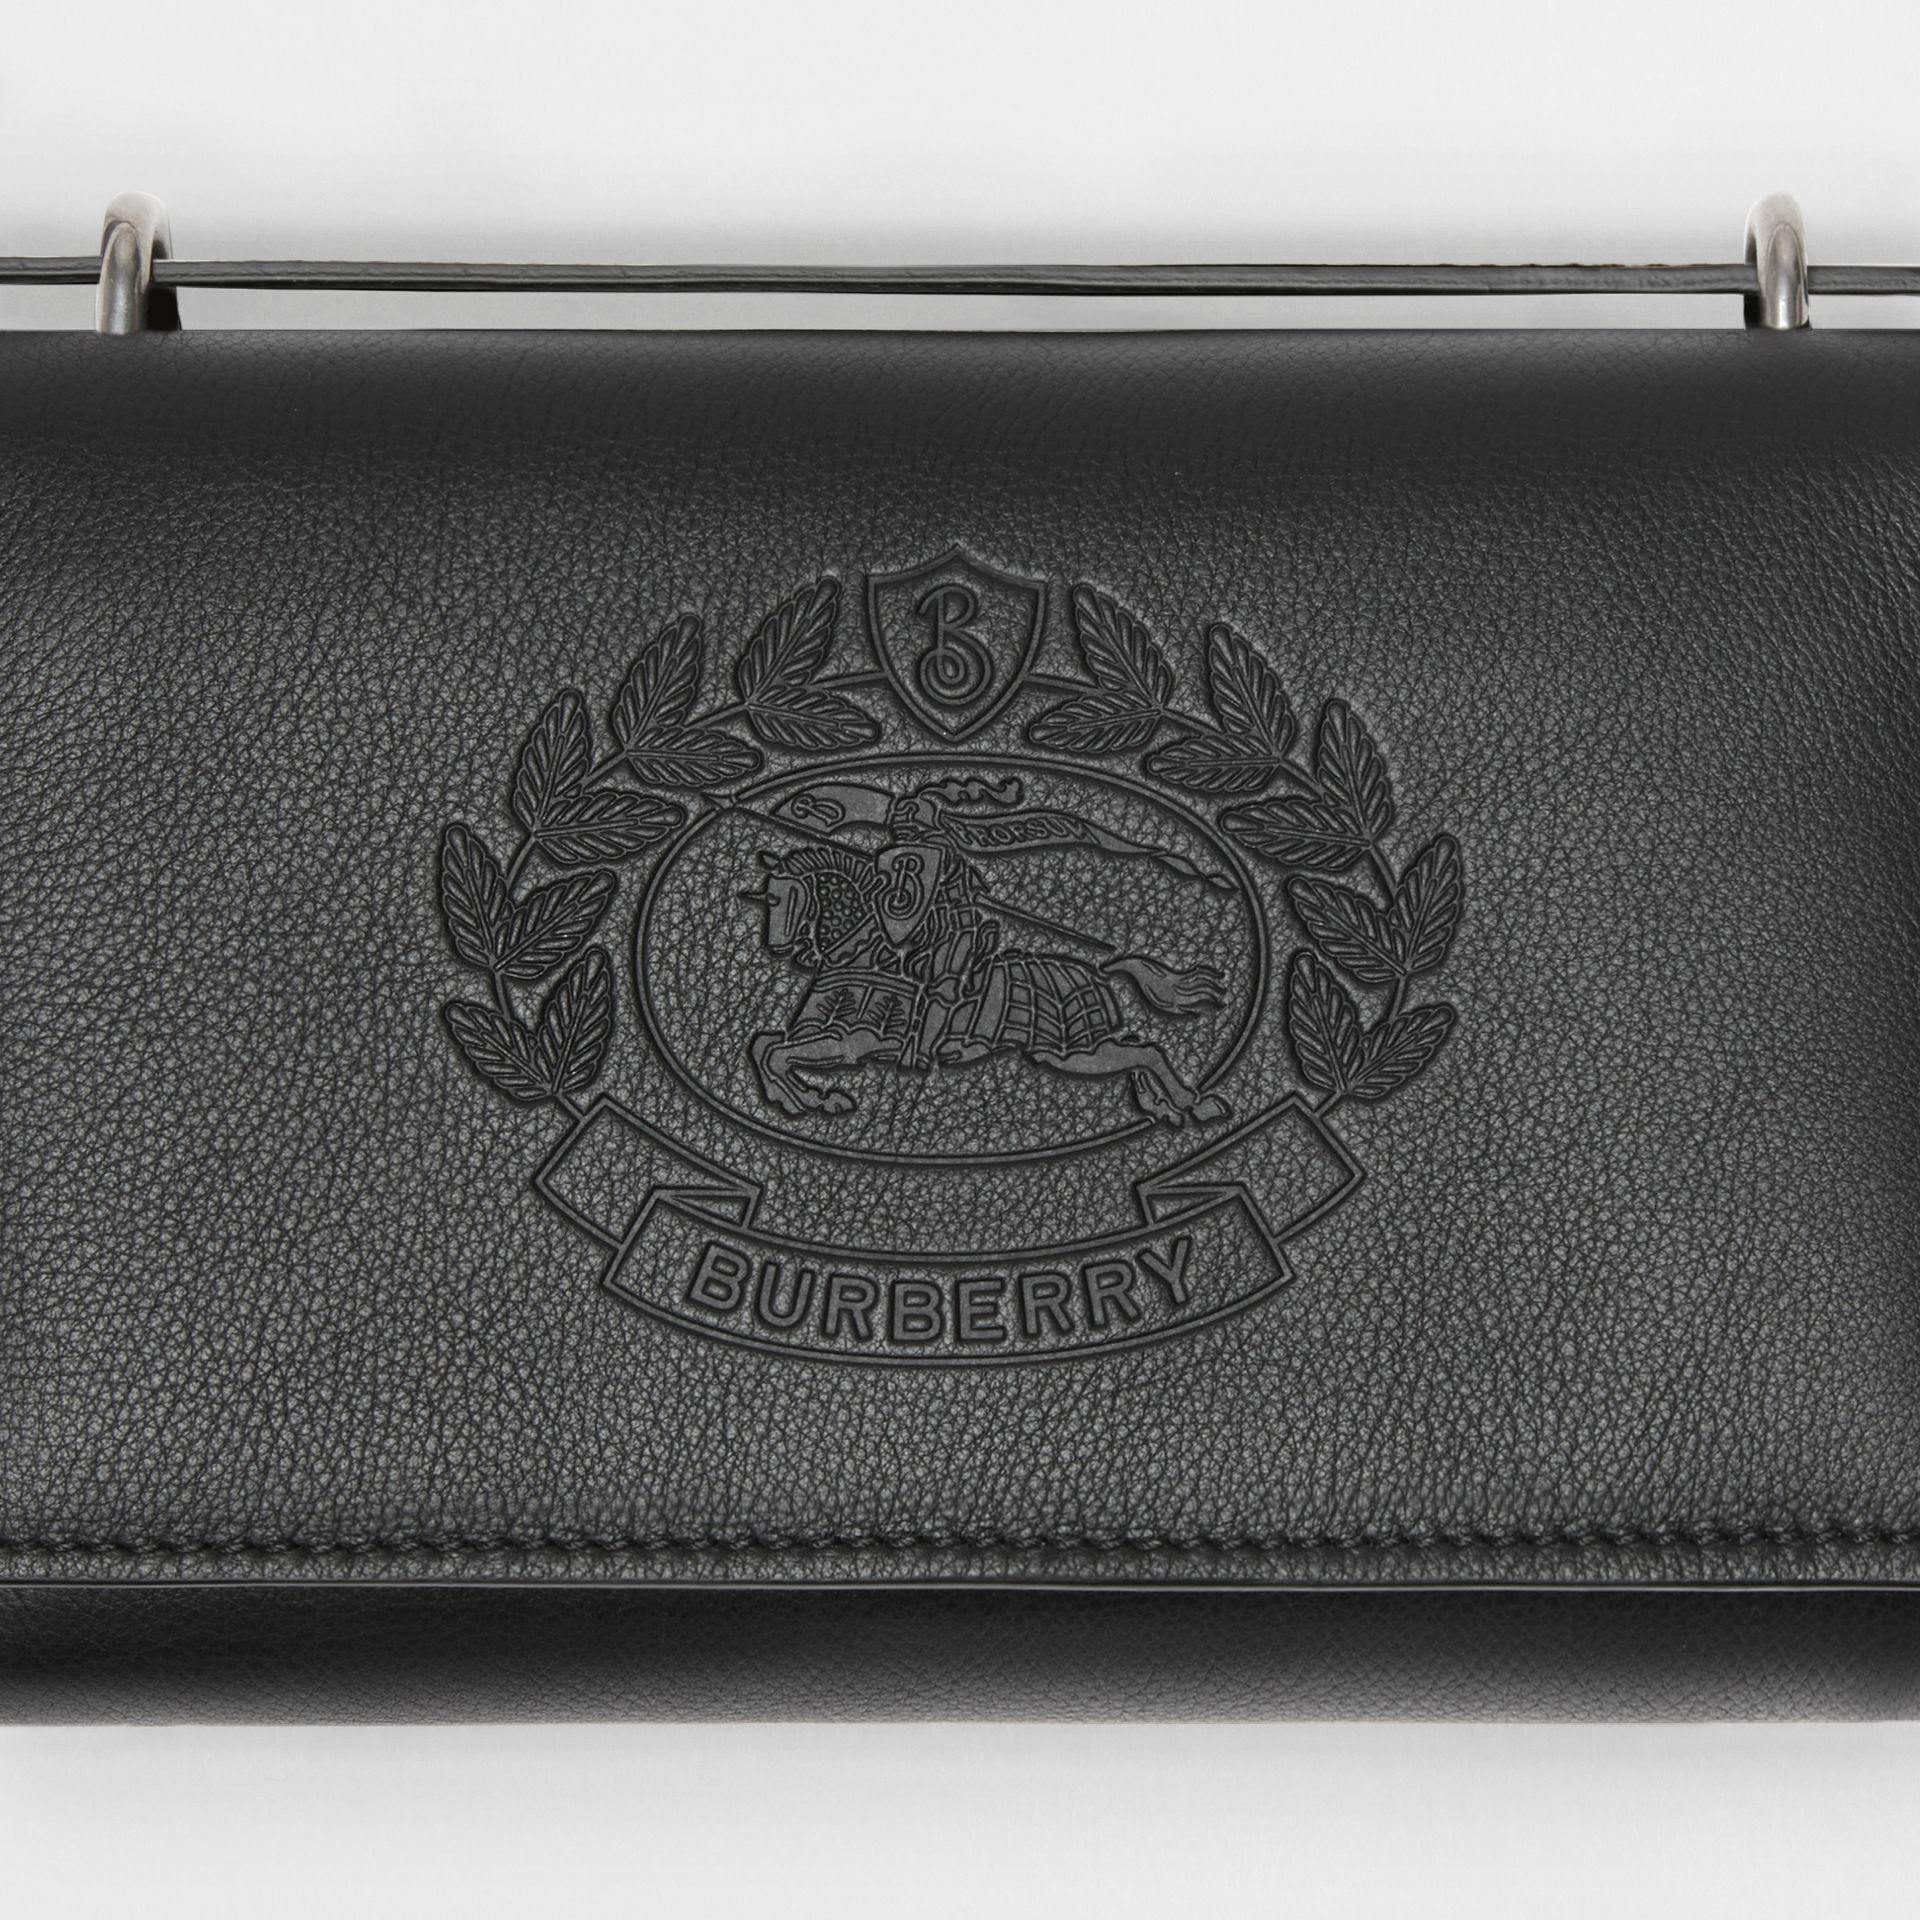 Embossed Crest Leather Wallet with Detachable Strap in Black - Women | Burberry Hong Kong - gallery image 1